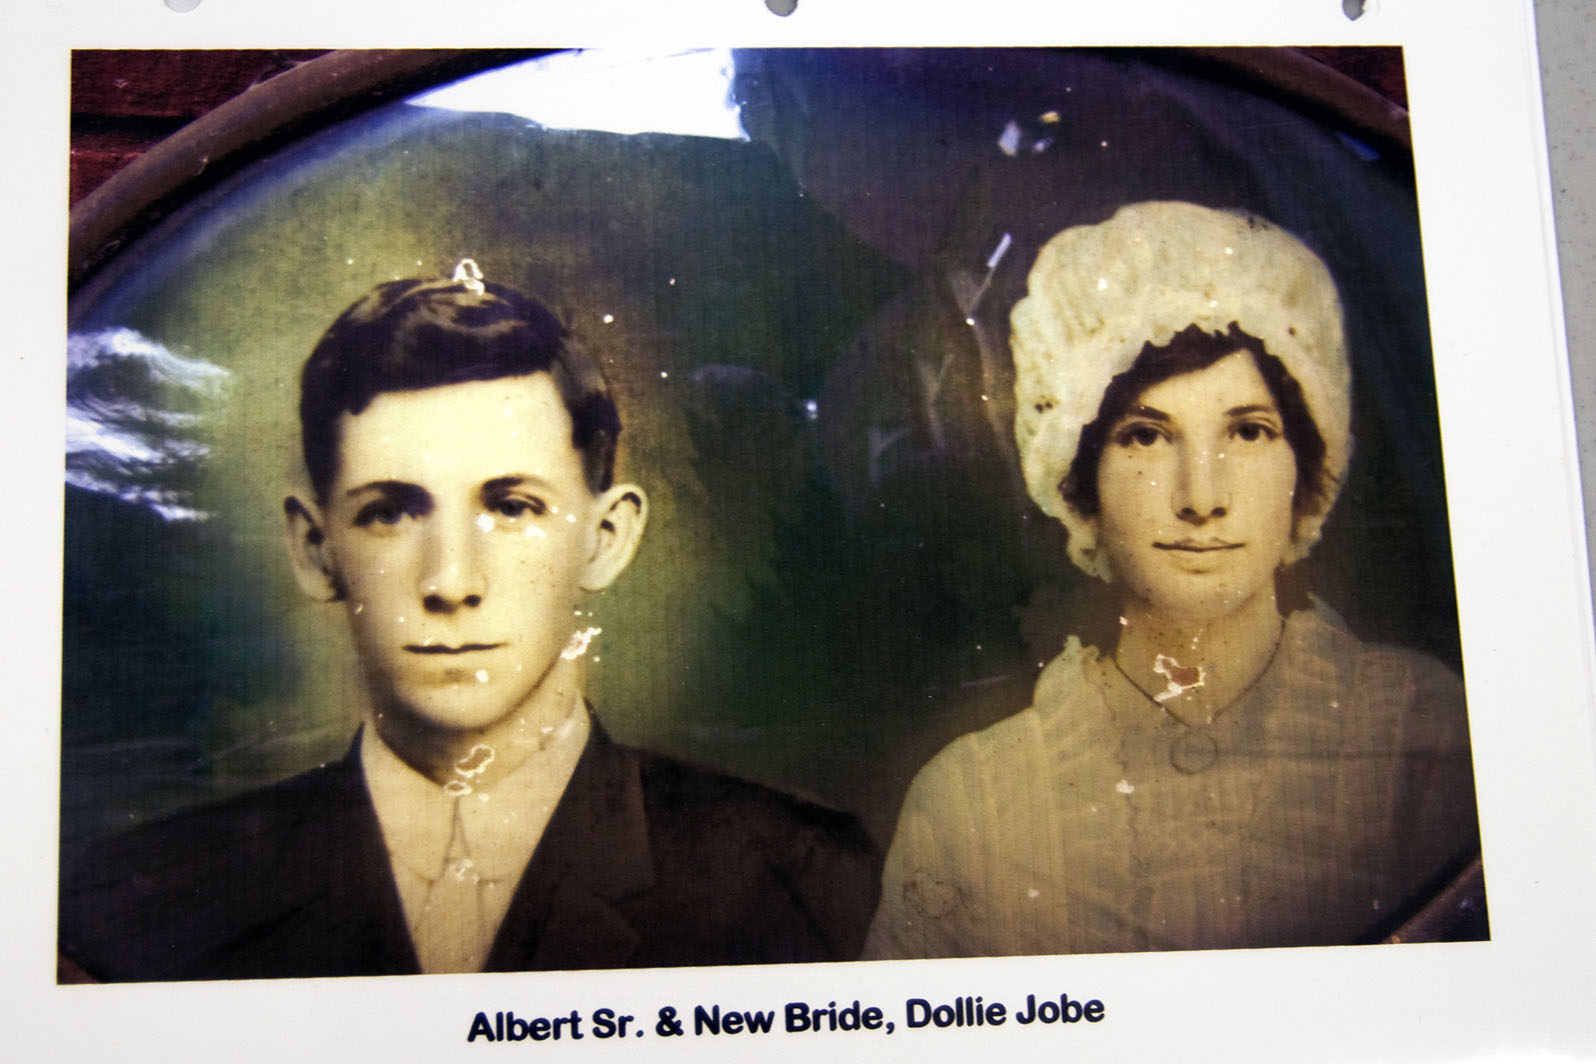 William Albert Cooke and Dollie Violet Jobe